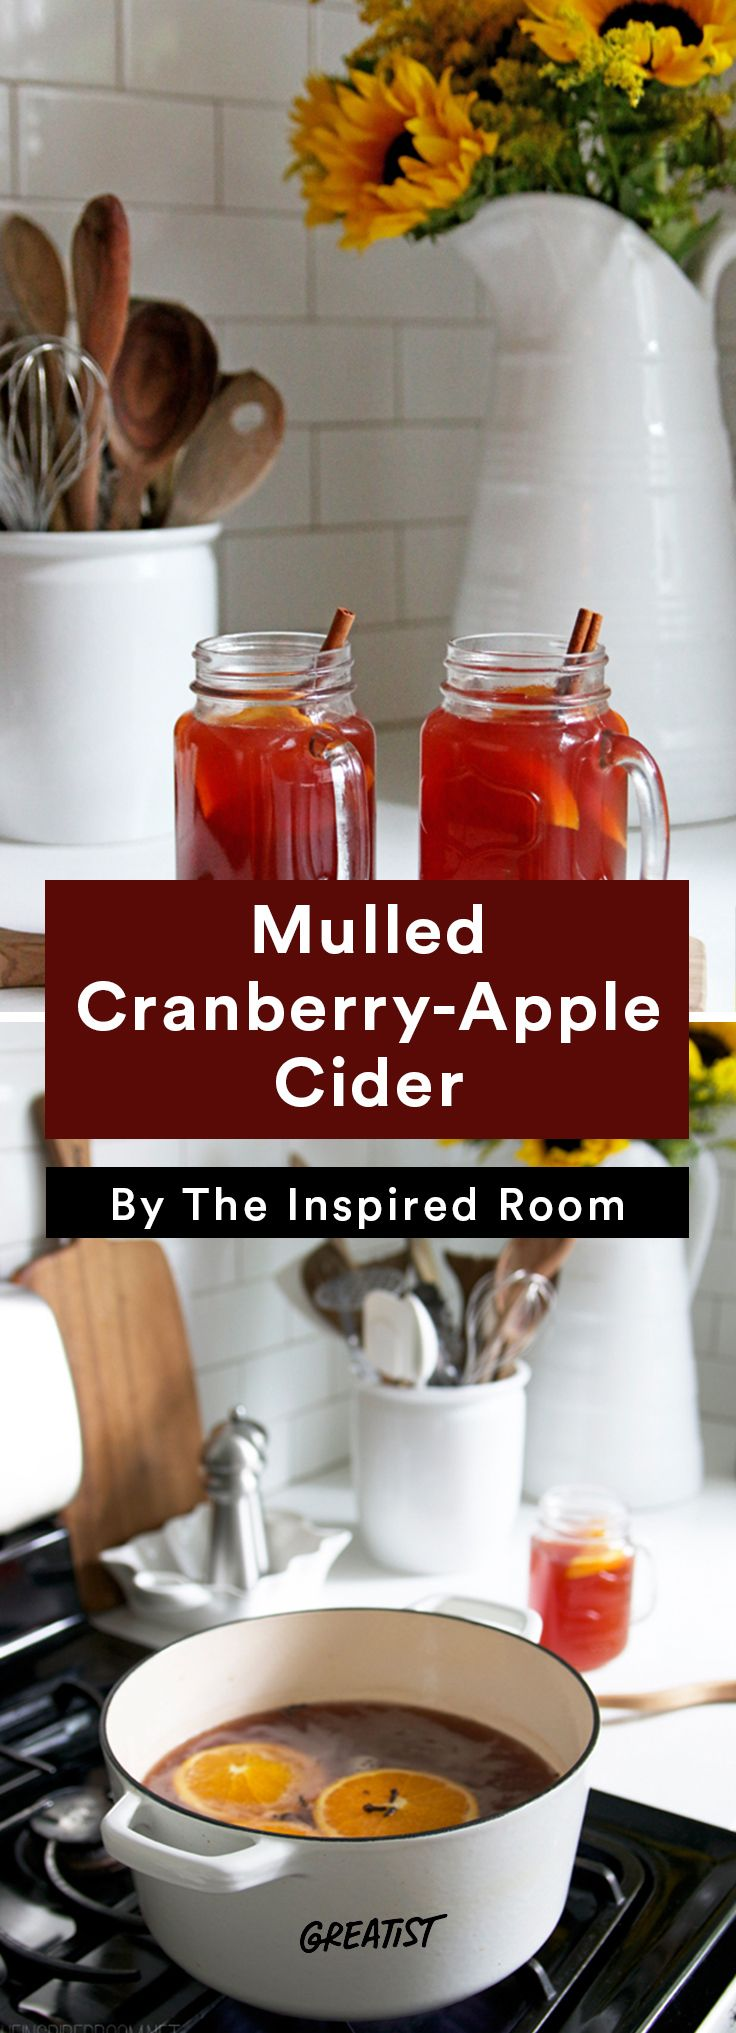 2. Mulled Cranberry-Apple Cider #warm #drinks #recipes http://greatist.com/eat/warm-drink-recipes-better-than-a-pumpkin-spice-latte